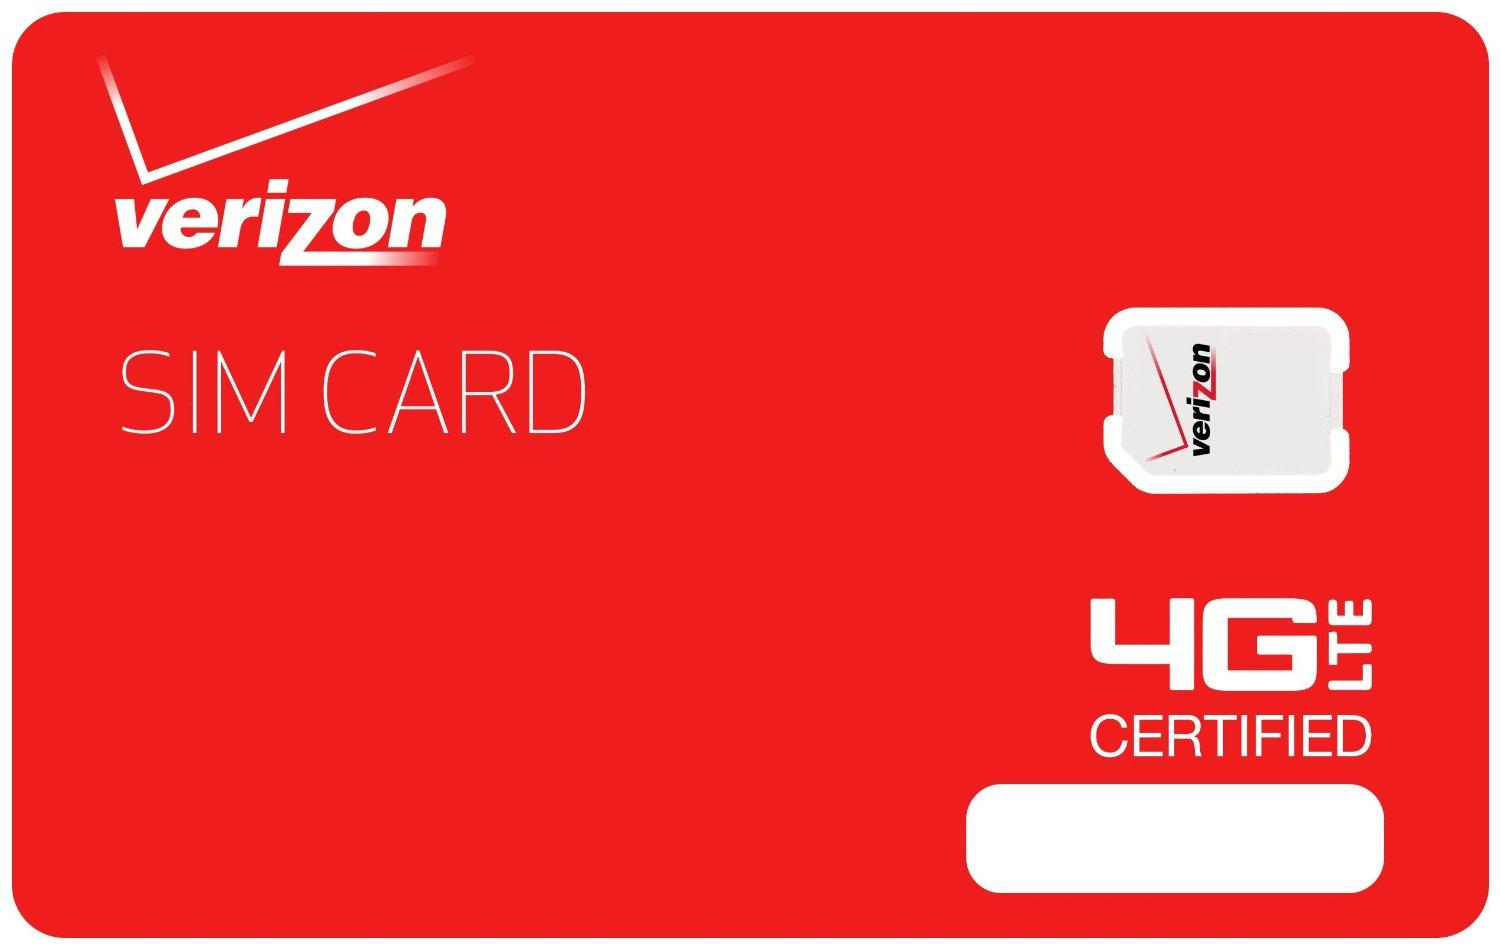 Verizon 4G SIM Activation Kit include the first month service